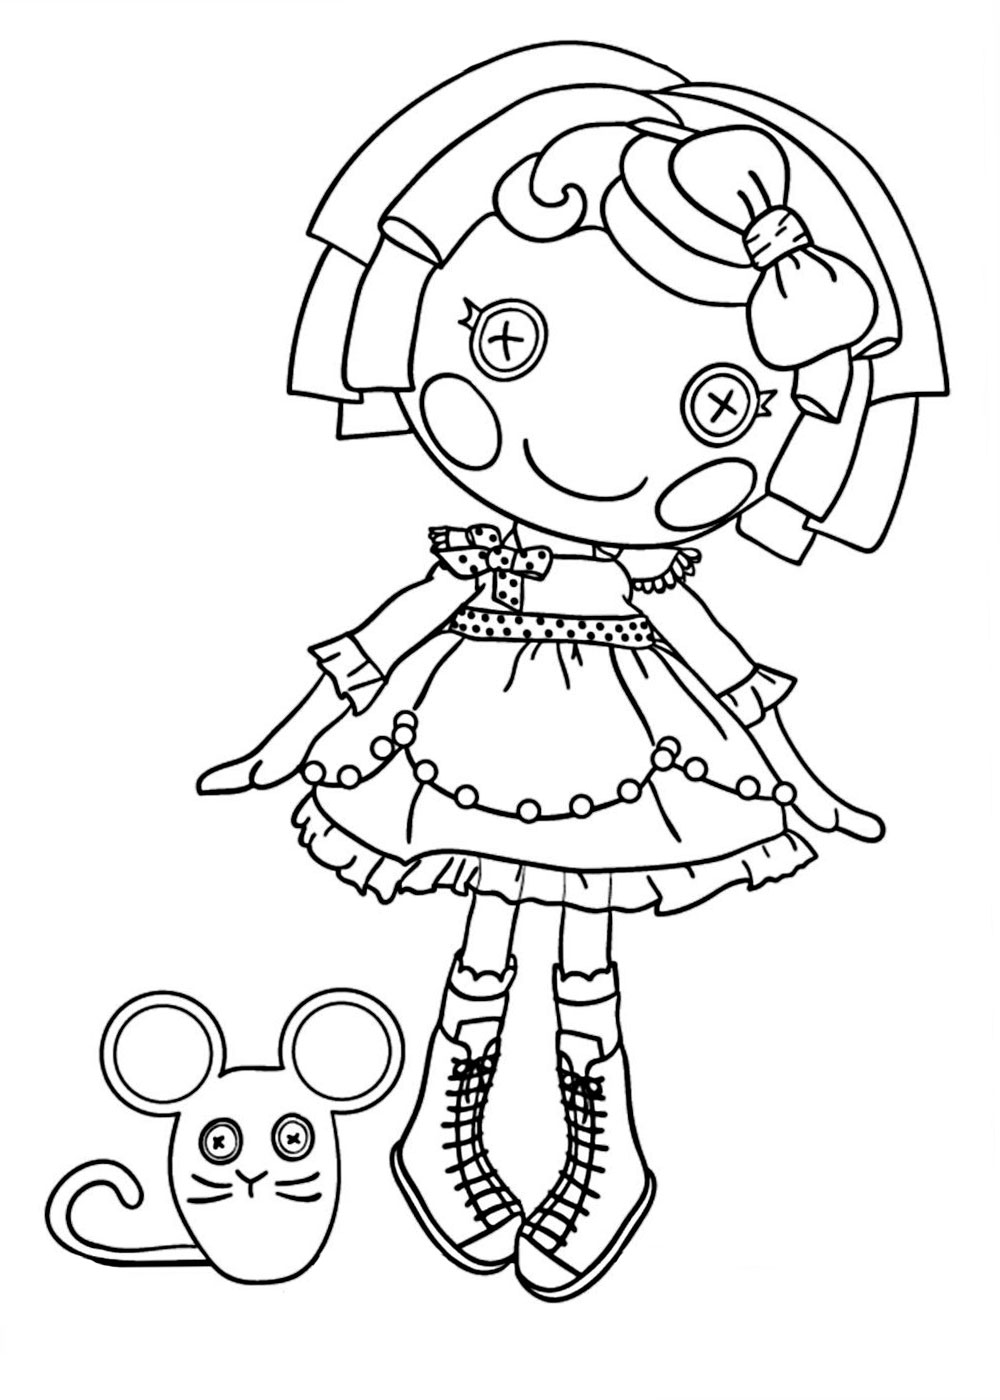 lalaloopsy babies coloring pages - photo#4